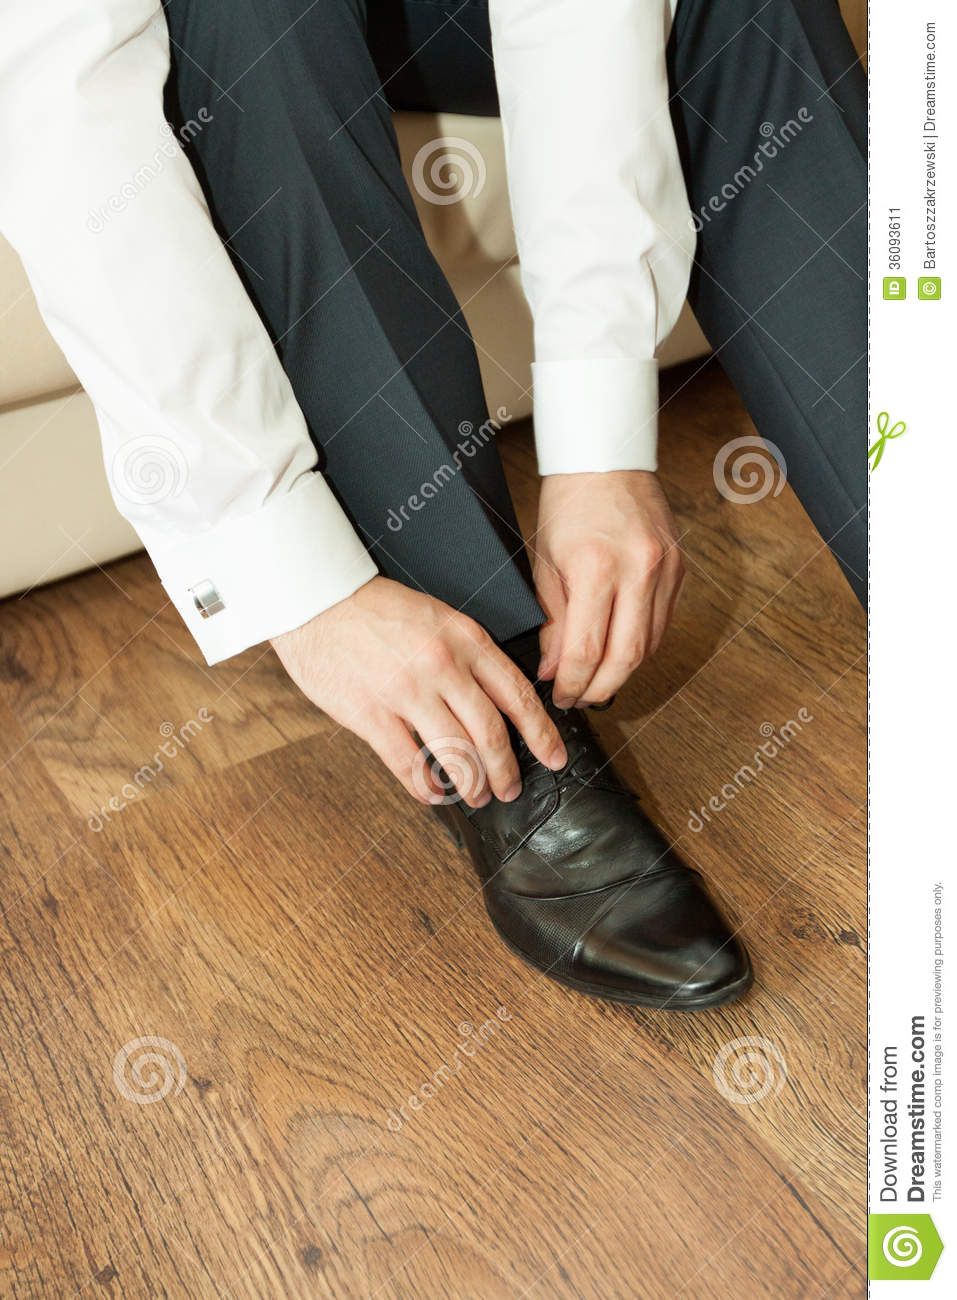 Dress Shoes To Suit Stock Image - Image: 36093611